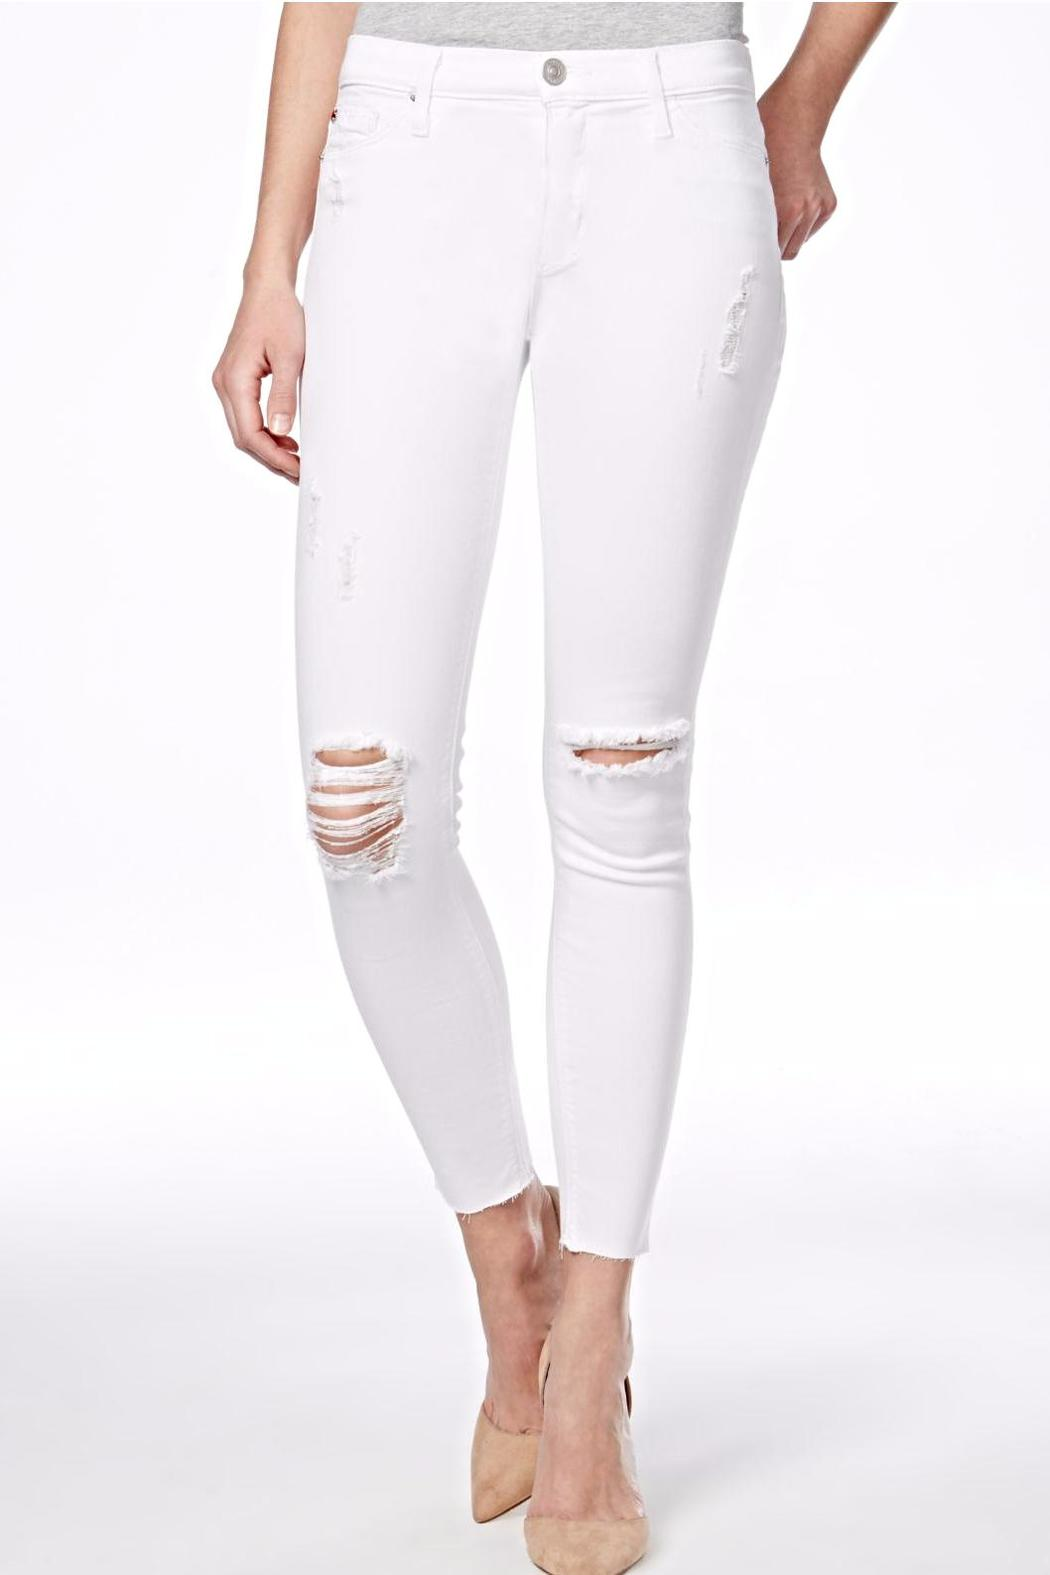 Hudson Jeans Nico Mid Rise White Jeans - Main Image